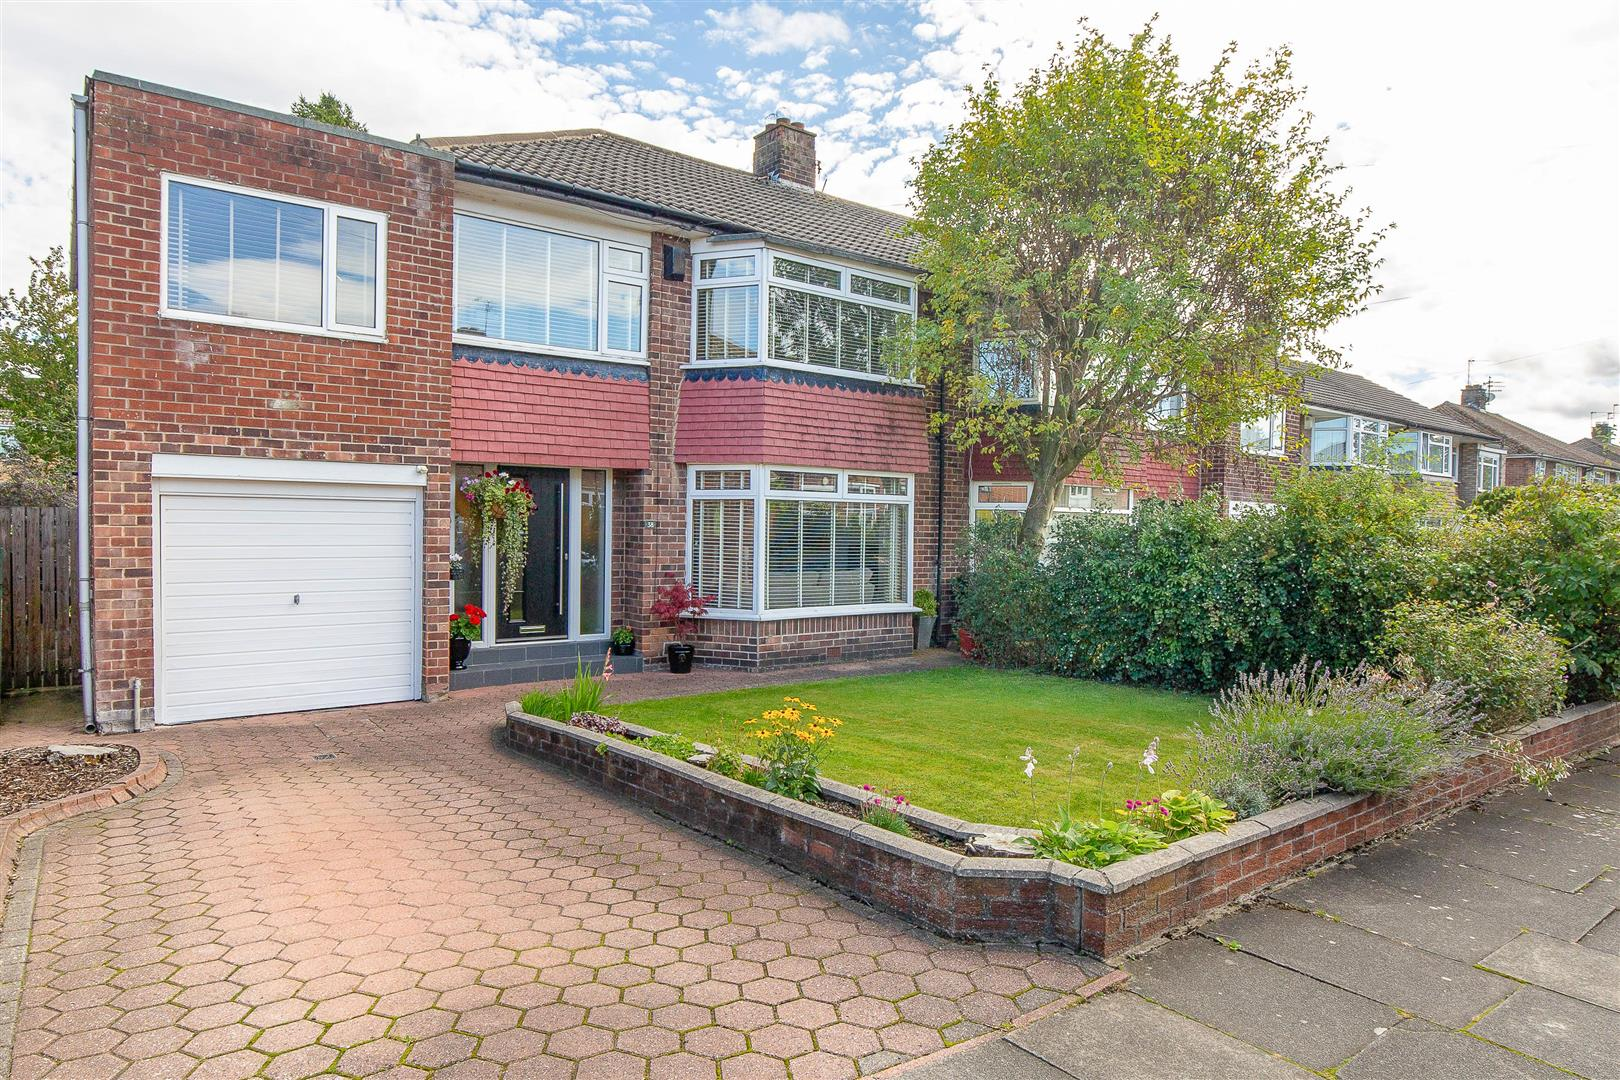 5 bed semi-detached house for sale in Melton Park, NE3 5TB - Property Image 1